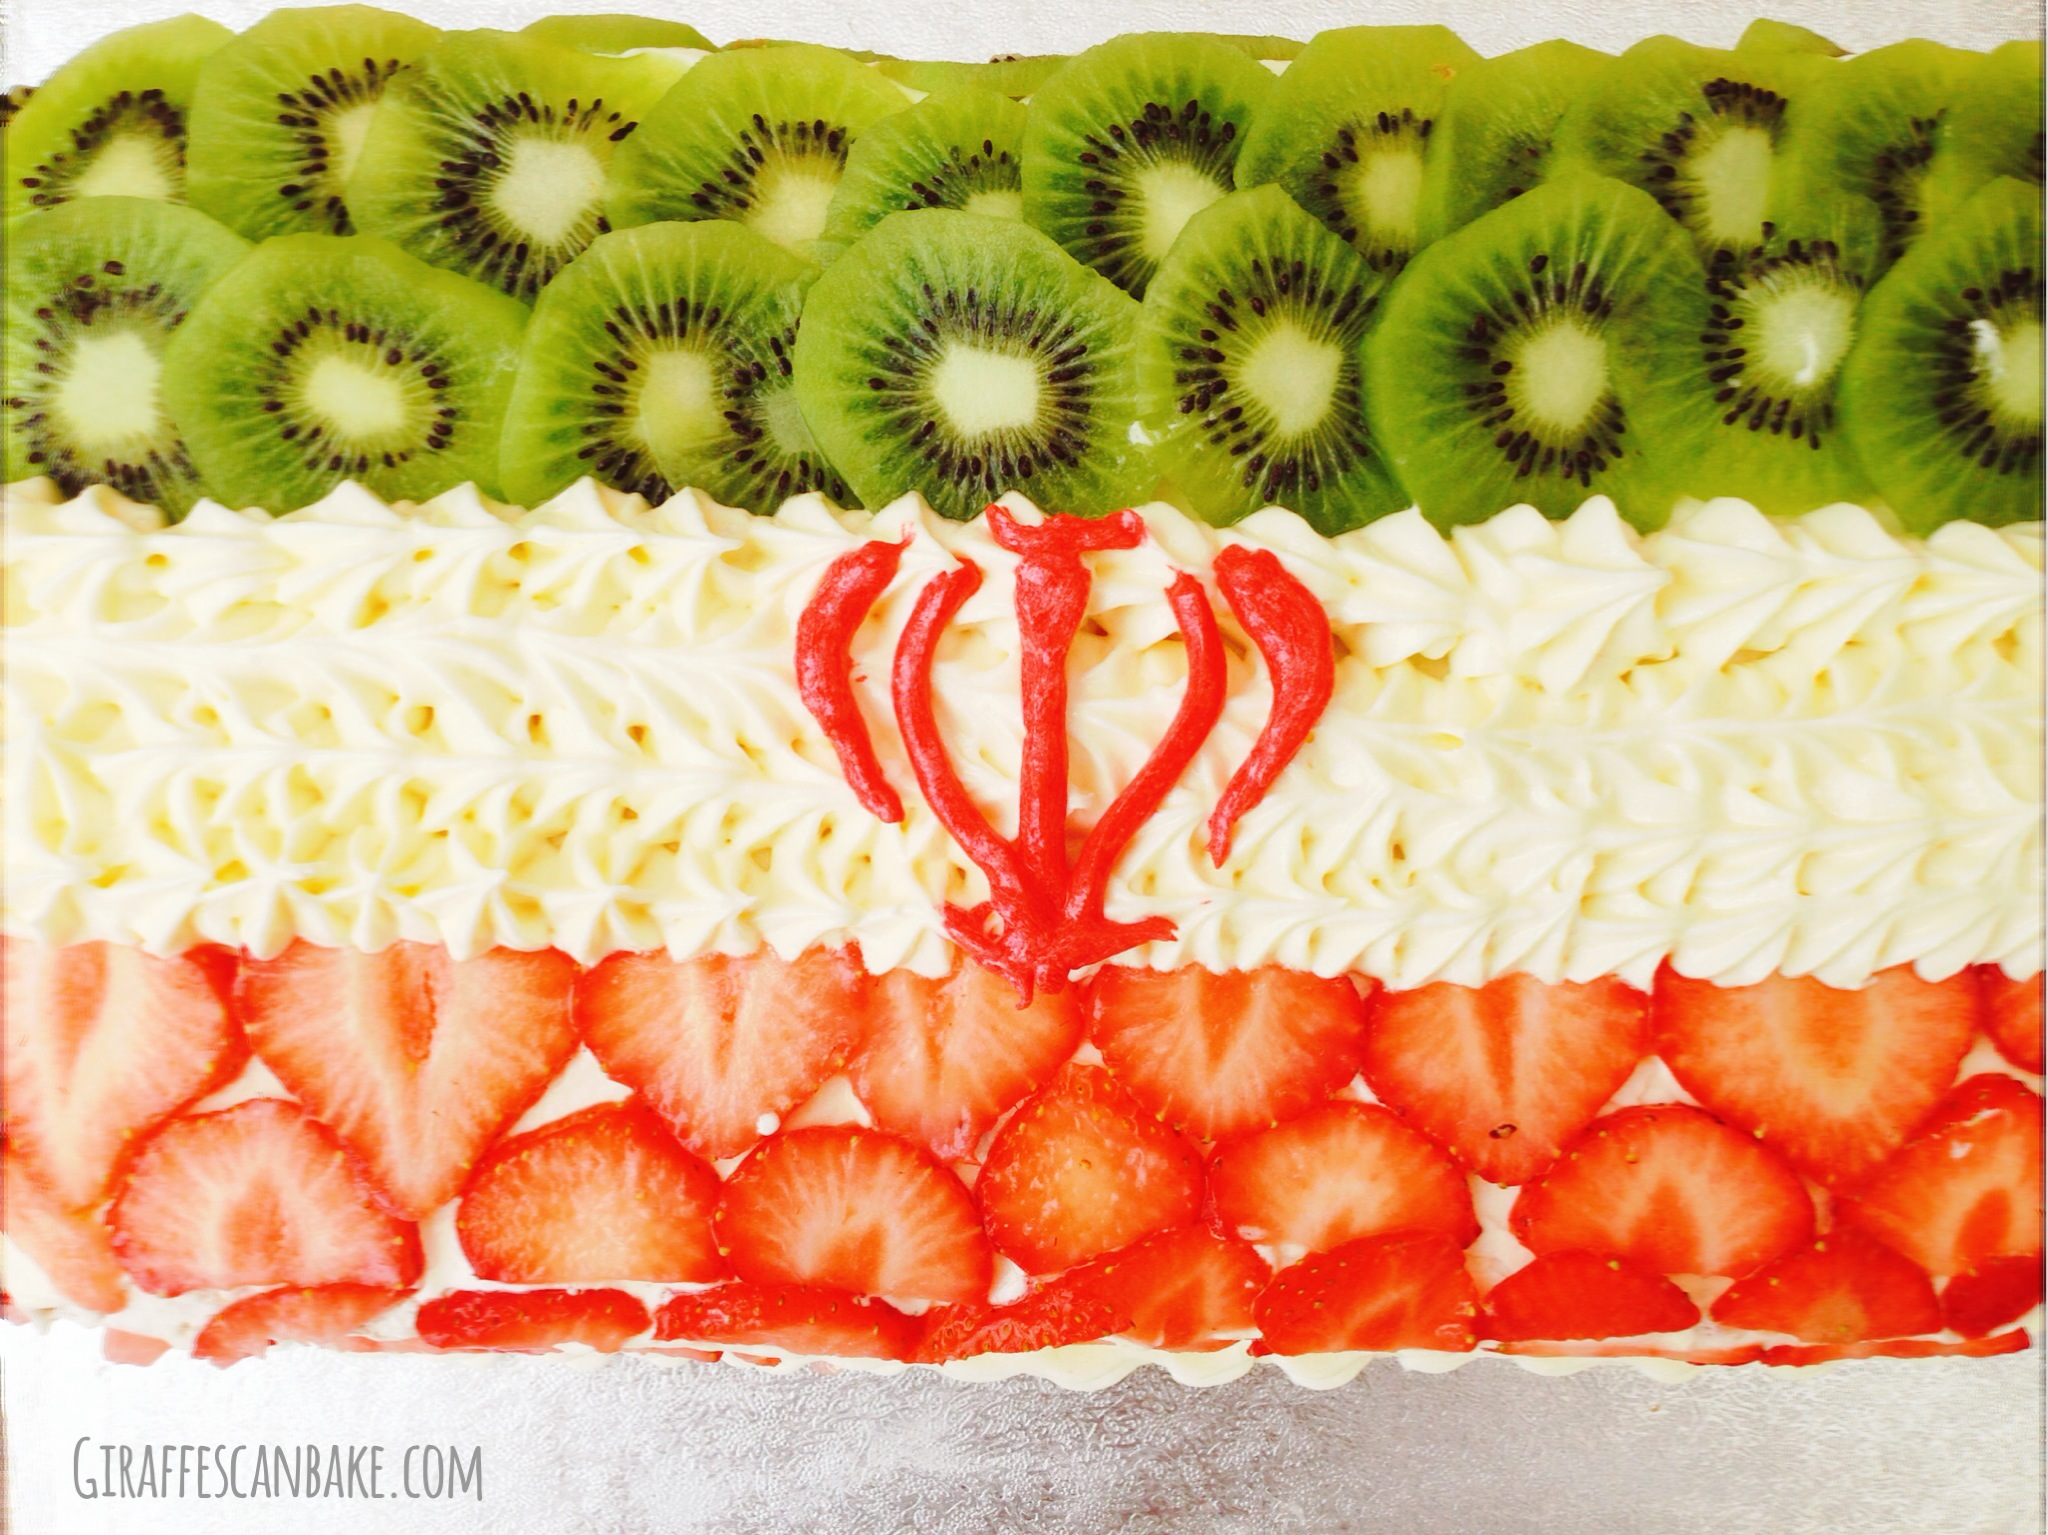 Iran Flag Vanilla Cake with Strawberries and Kiwii